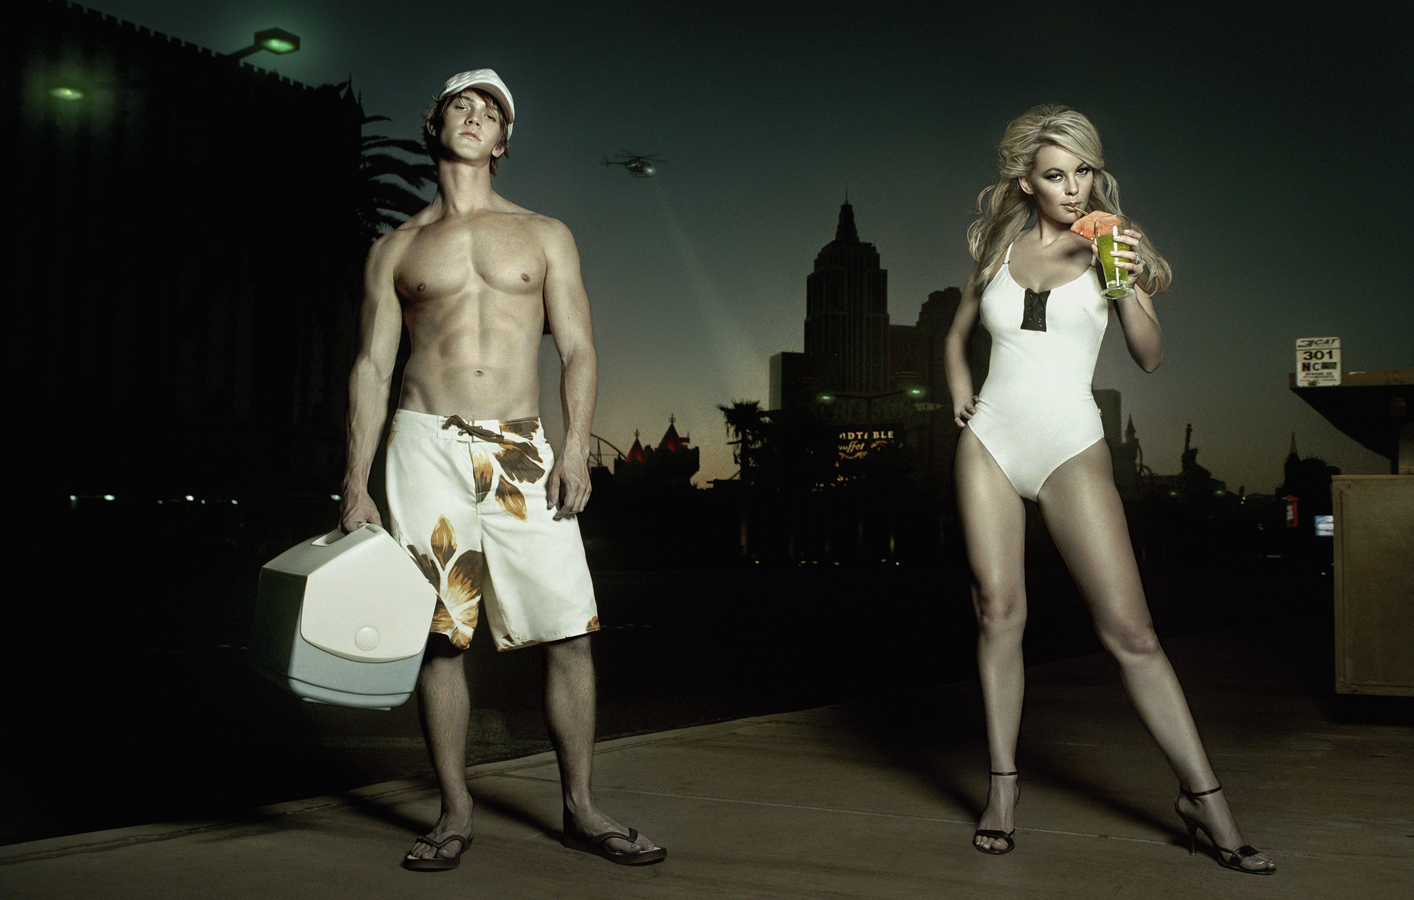 Man and woman wearing bathing suits |Dovis Bird Agency Reps